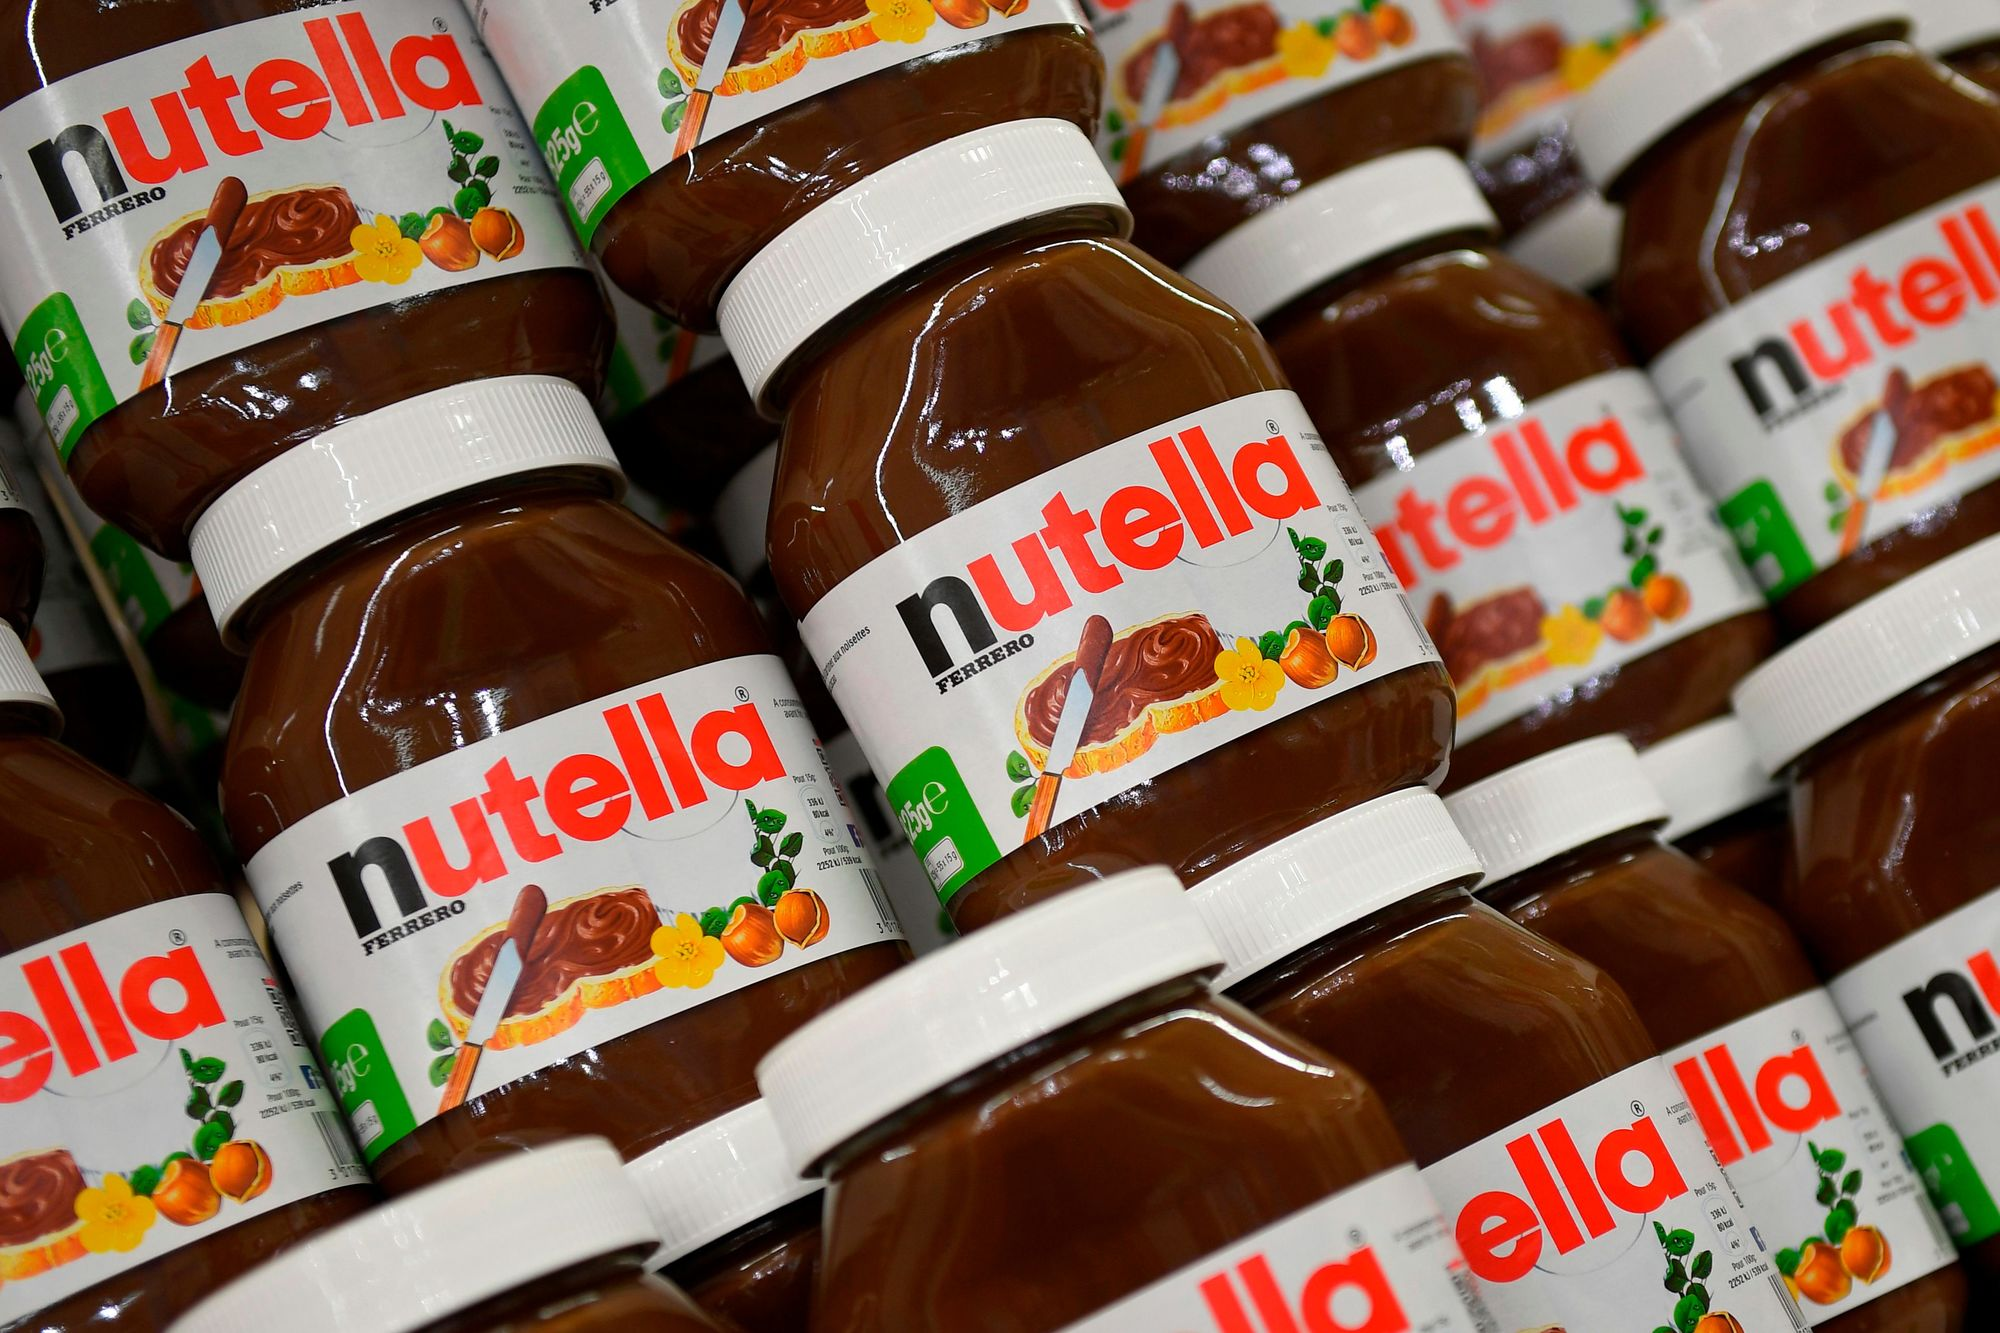 France Limits Supermarket Price Wars After Nutella Riots | Bloomberg